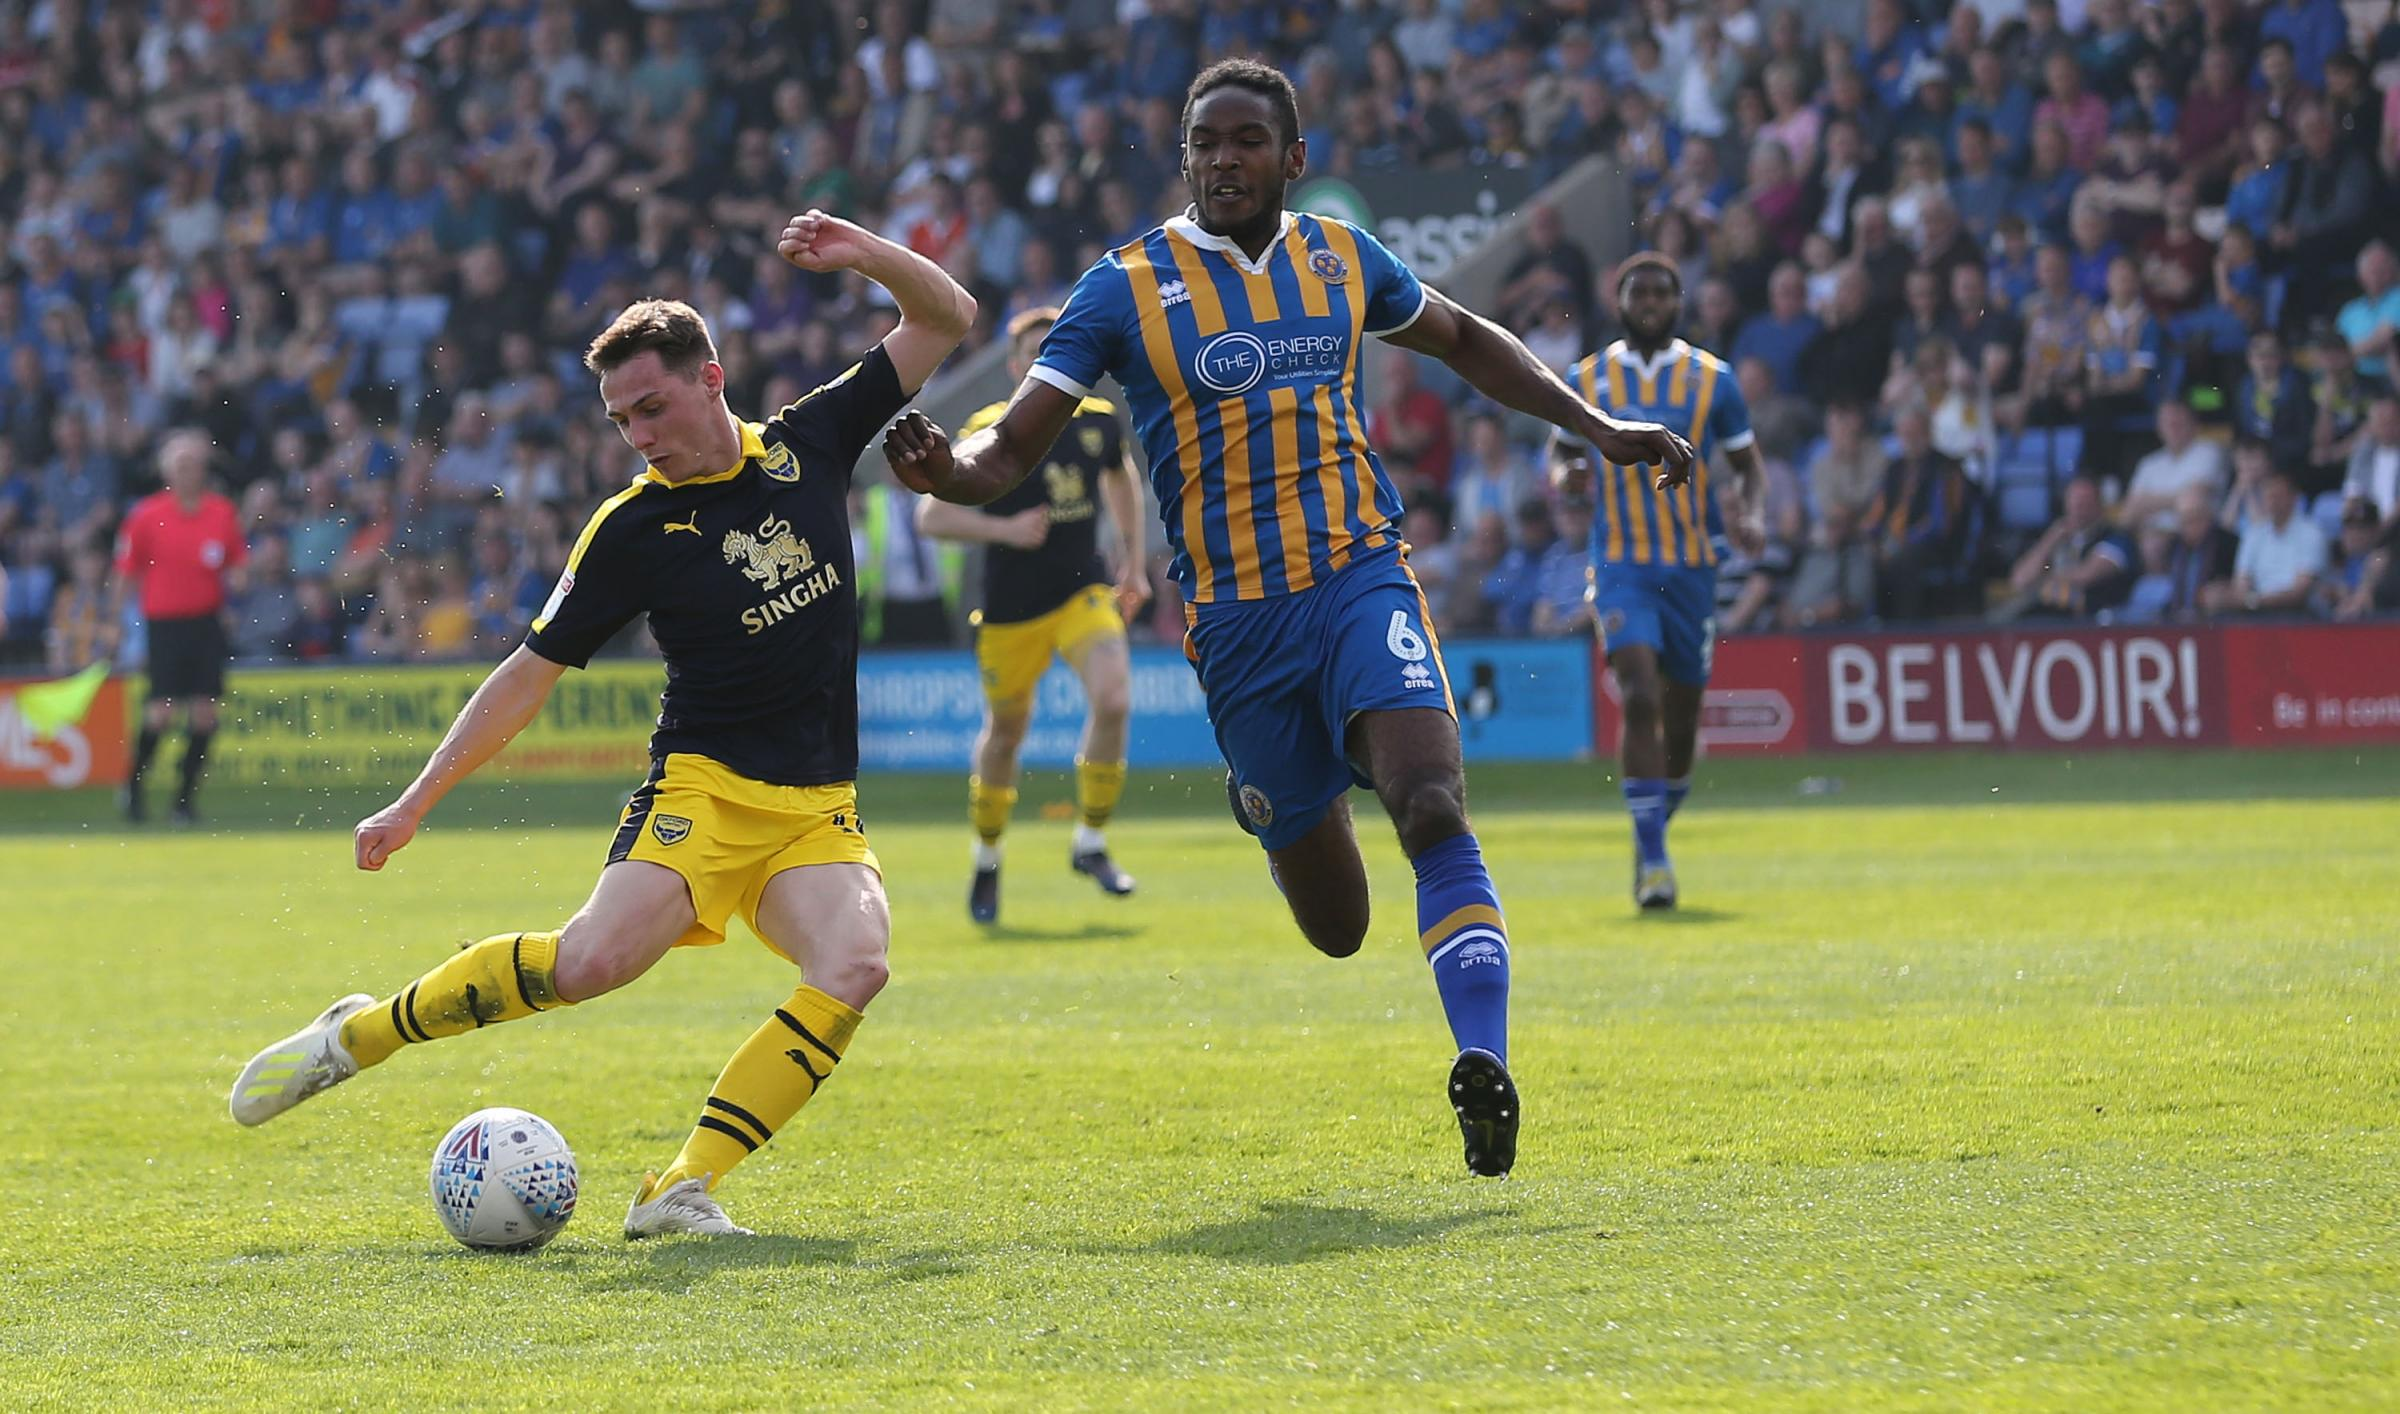 Gavin Whyte scores his second goal of the afternoon at Shrewsbury Town  Picture: Richard Parkes